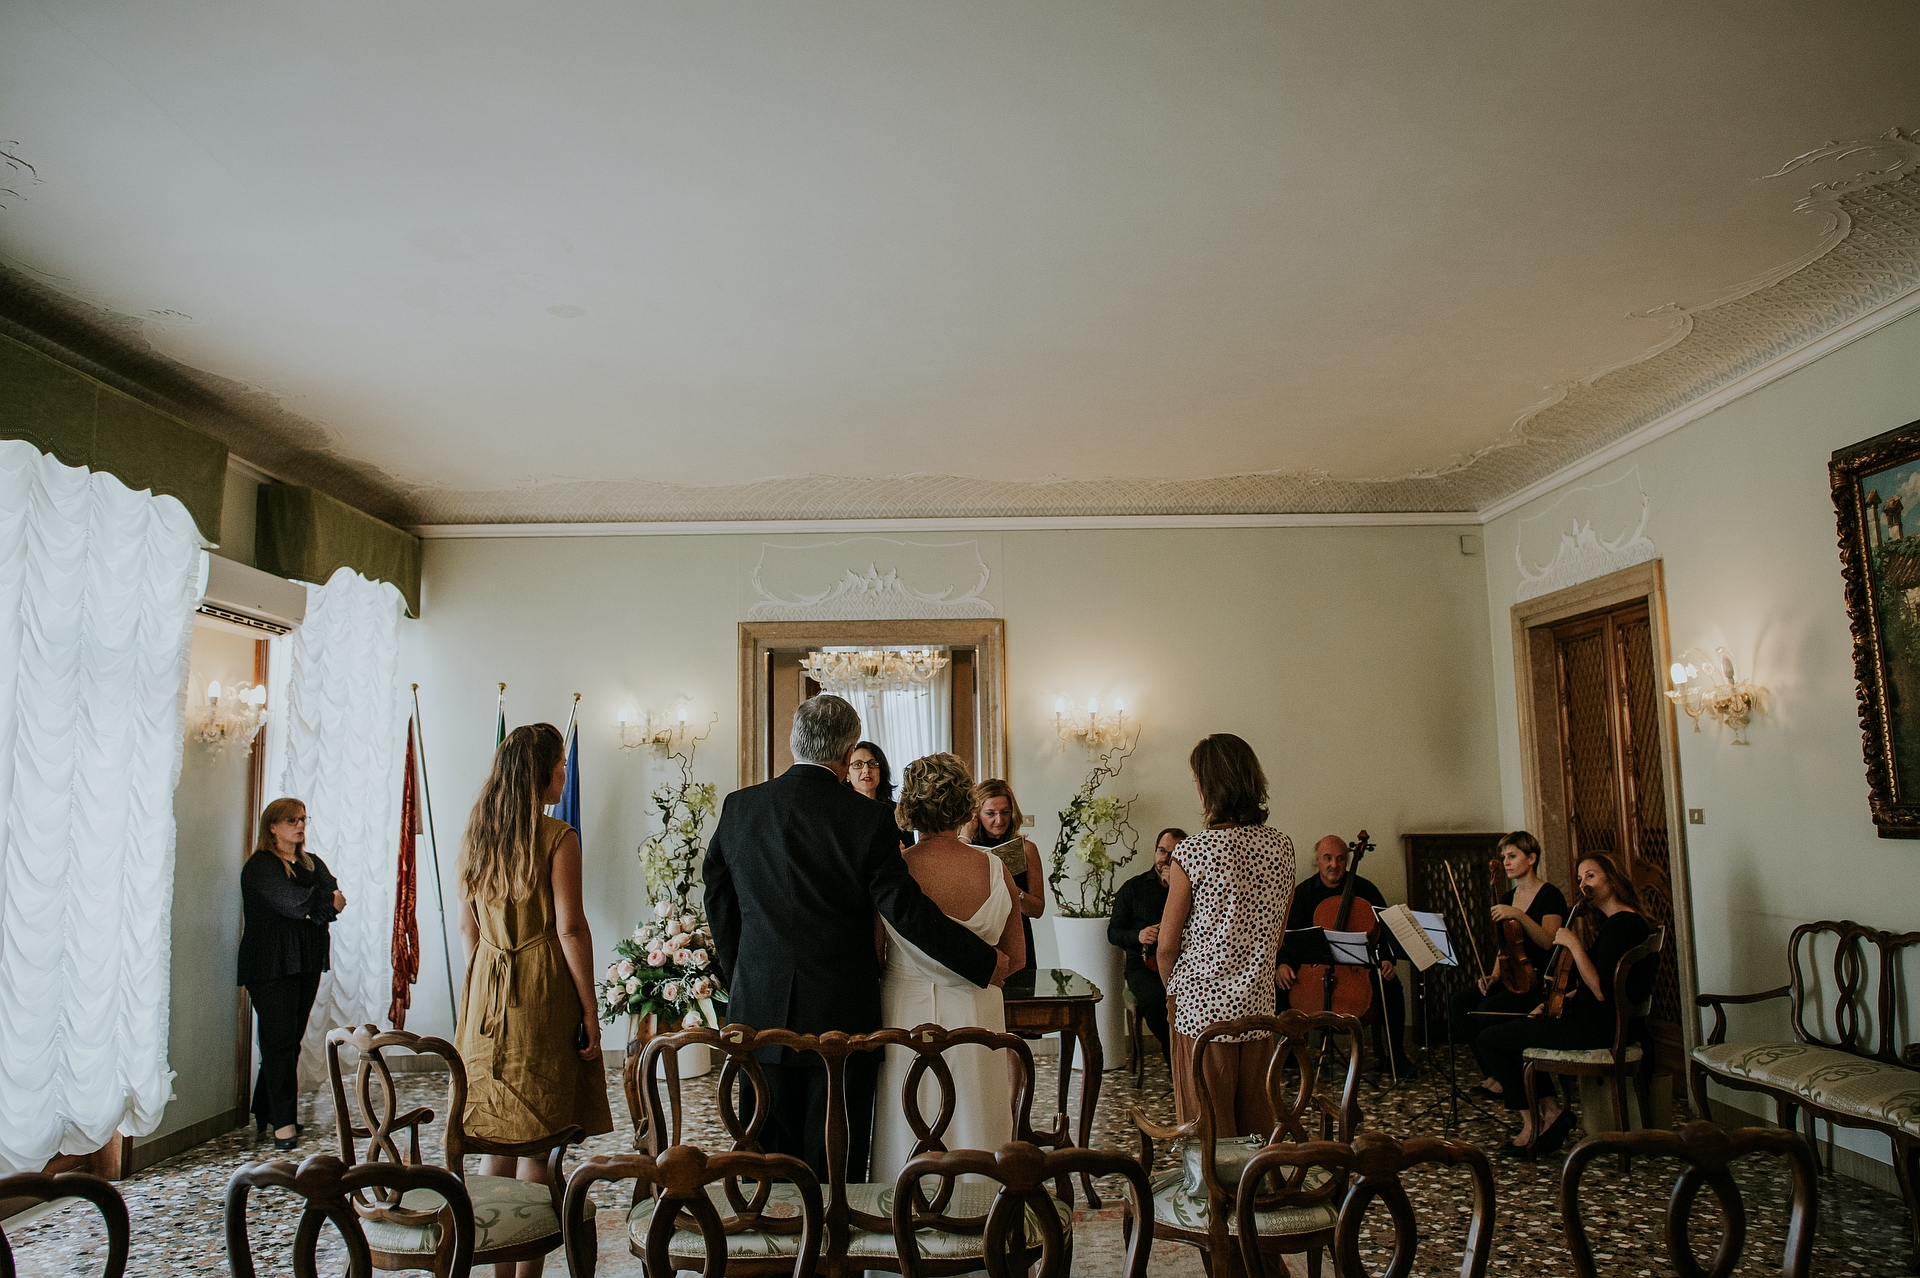 Palazzo Cavalli Town Hall - Venice, Italy Elopement Image | A moment of the intimate ceremony with the witnesses